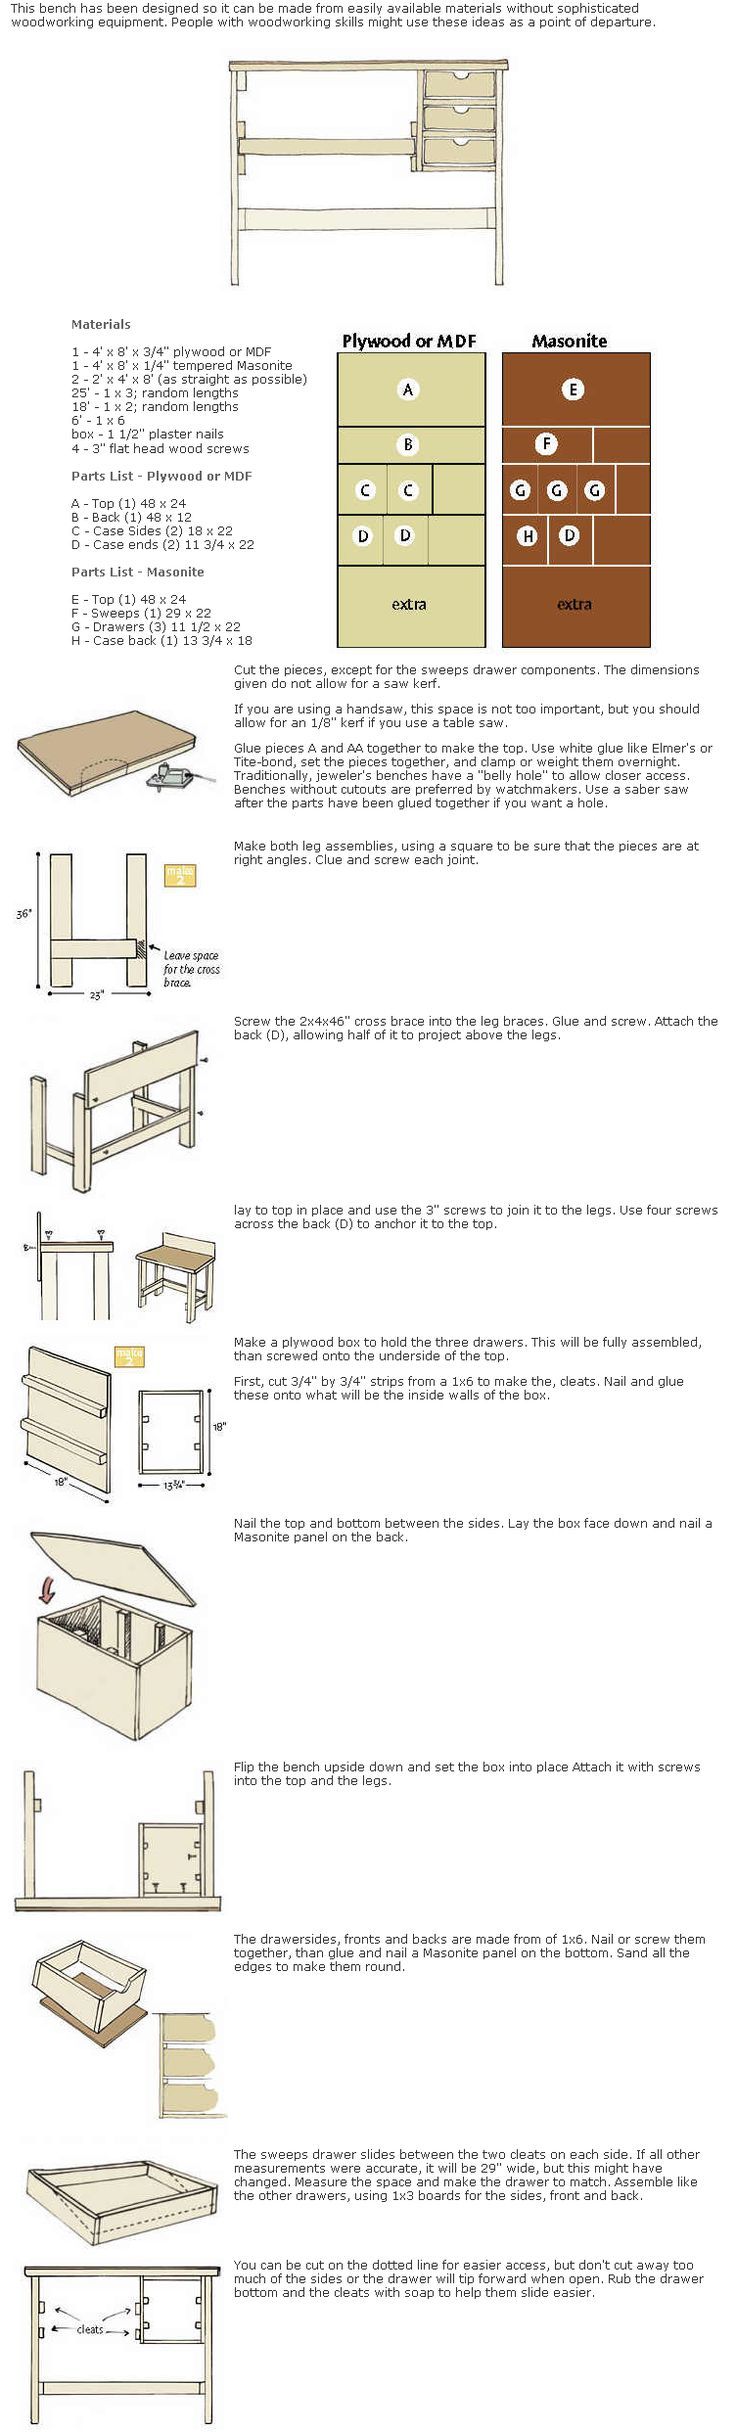 Building your Own Basic Jewelers Bench « Artbyhandz's Place: Benches Manual, Building, Basic Jewels, Jewelry Benches, Benches Tutorials, Jewels Benches Us, Artbyhandz Places, Basic Benches, Benches Us Pallets